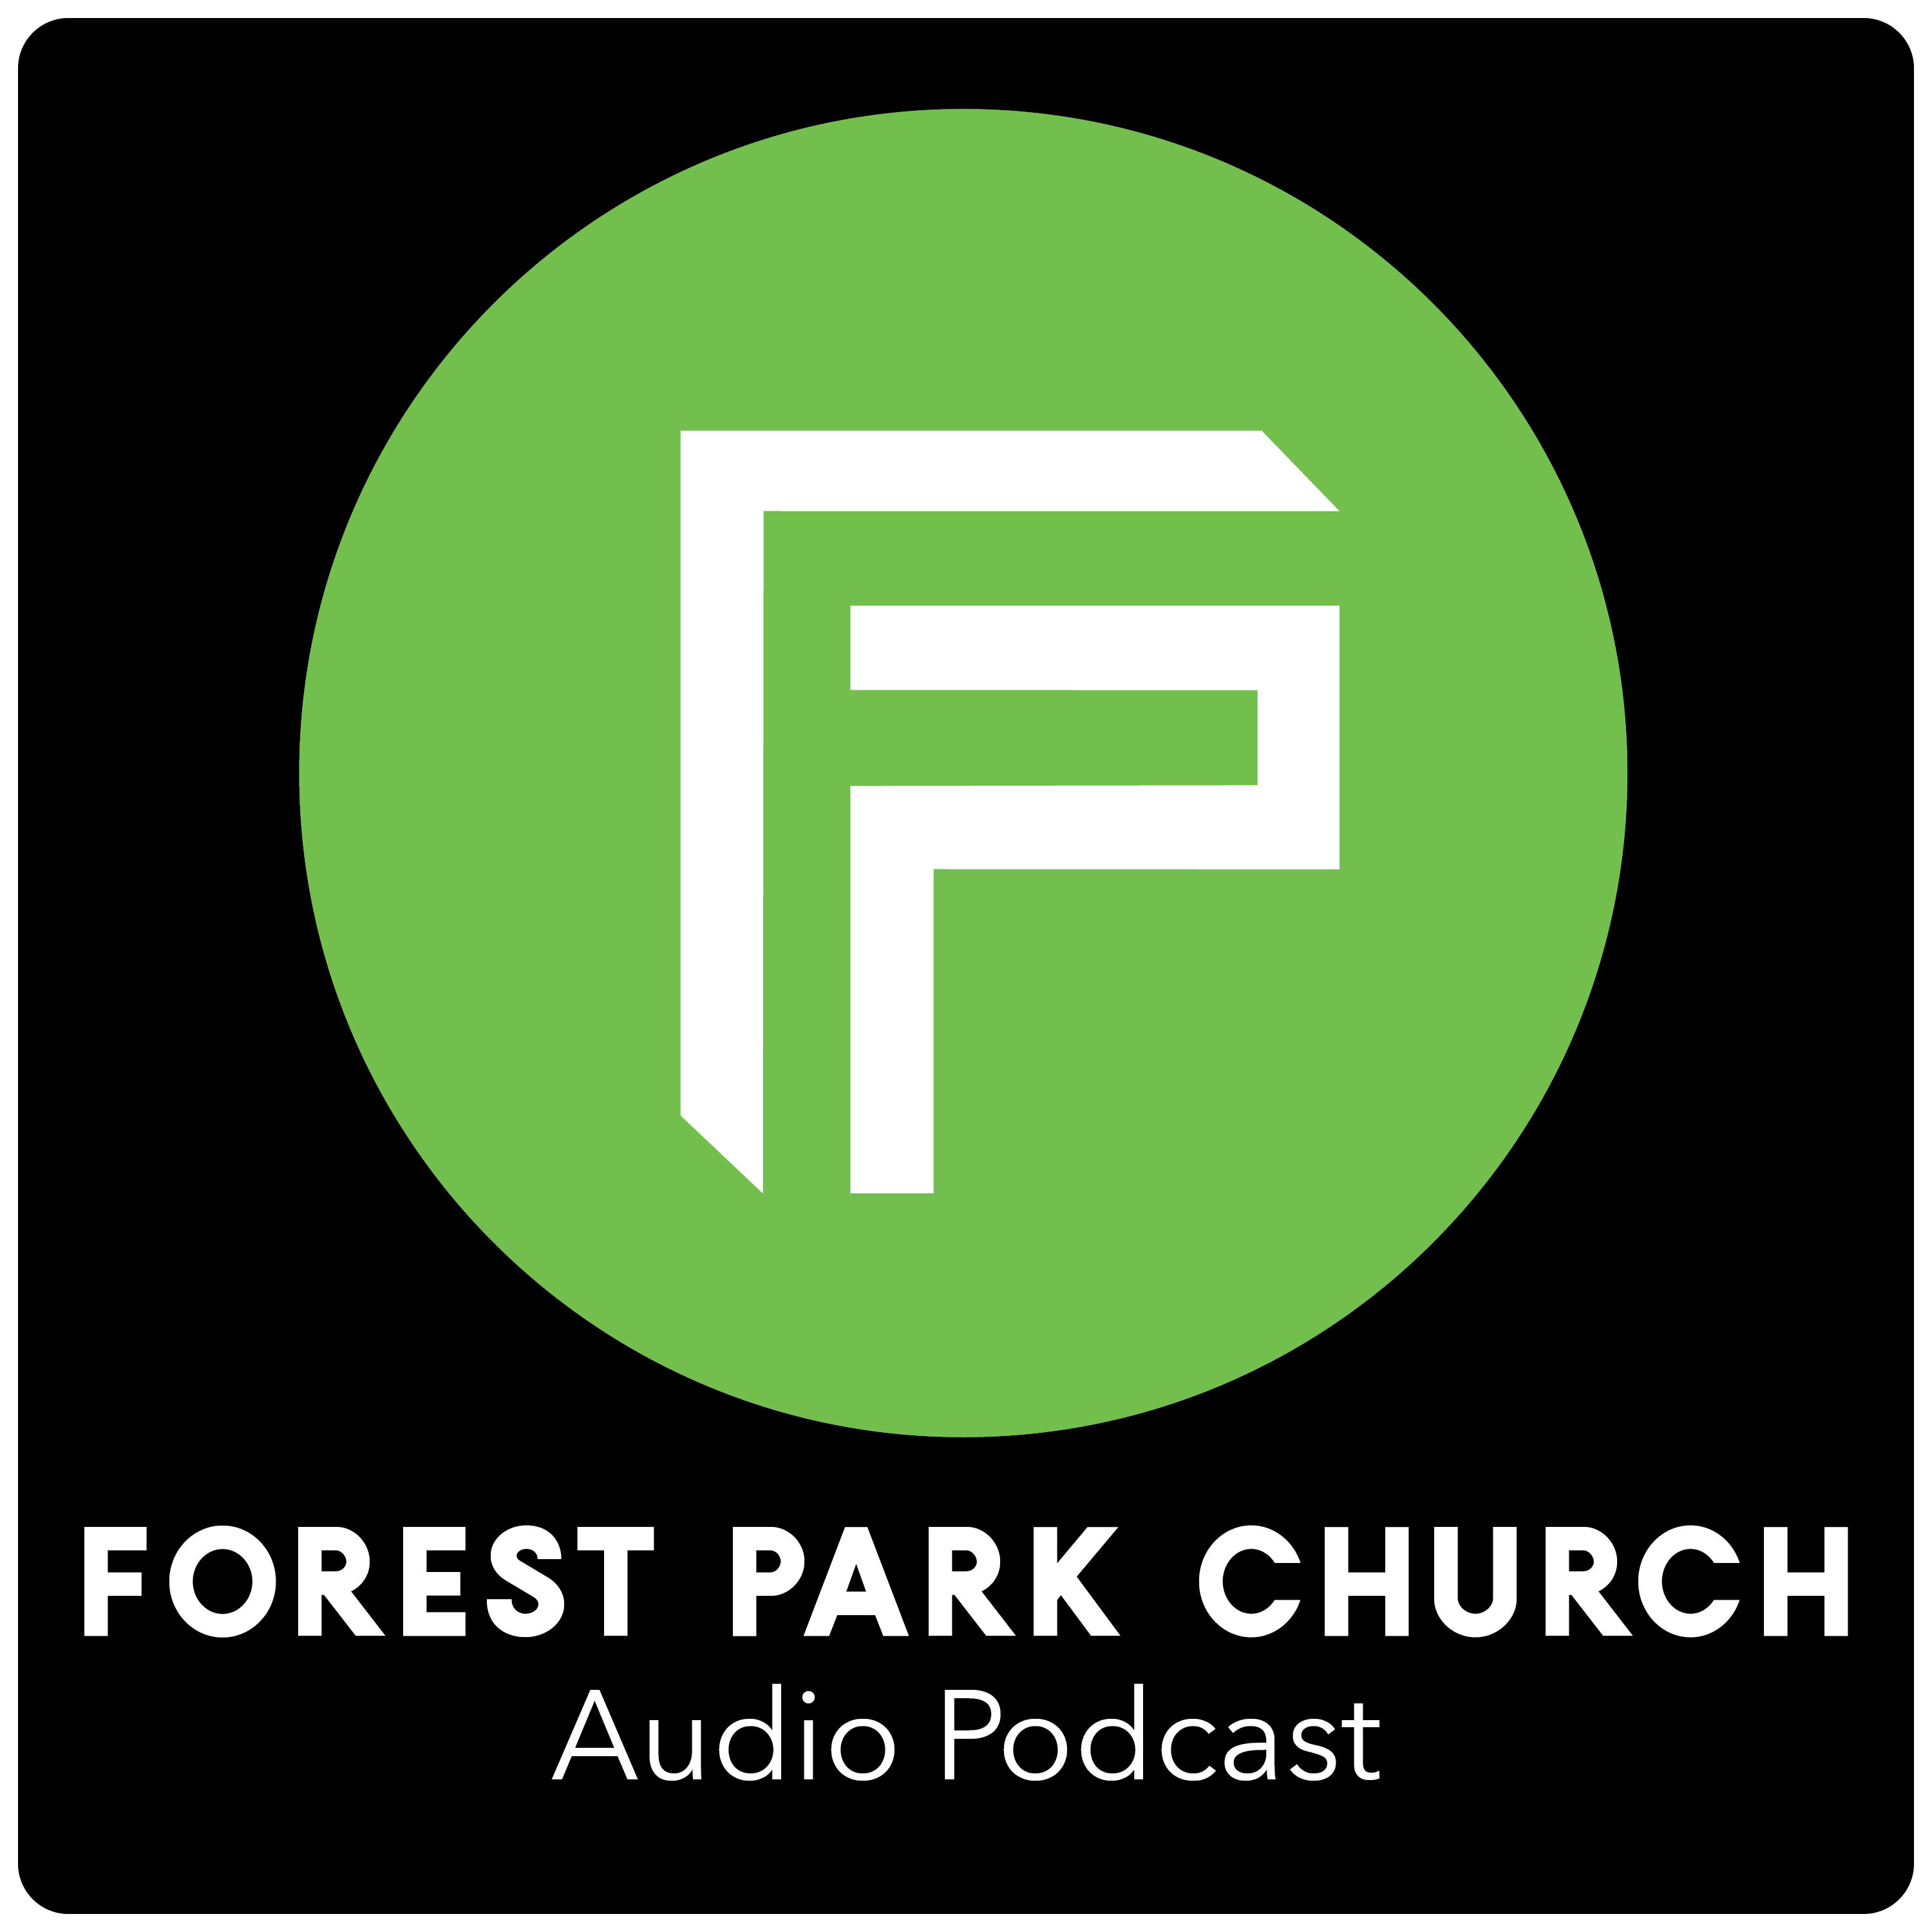 Forest Park Church Audio Podcast